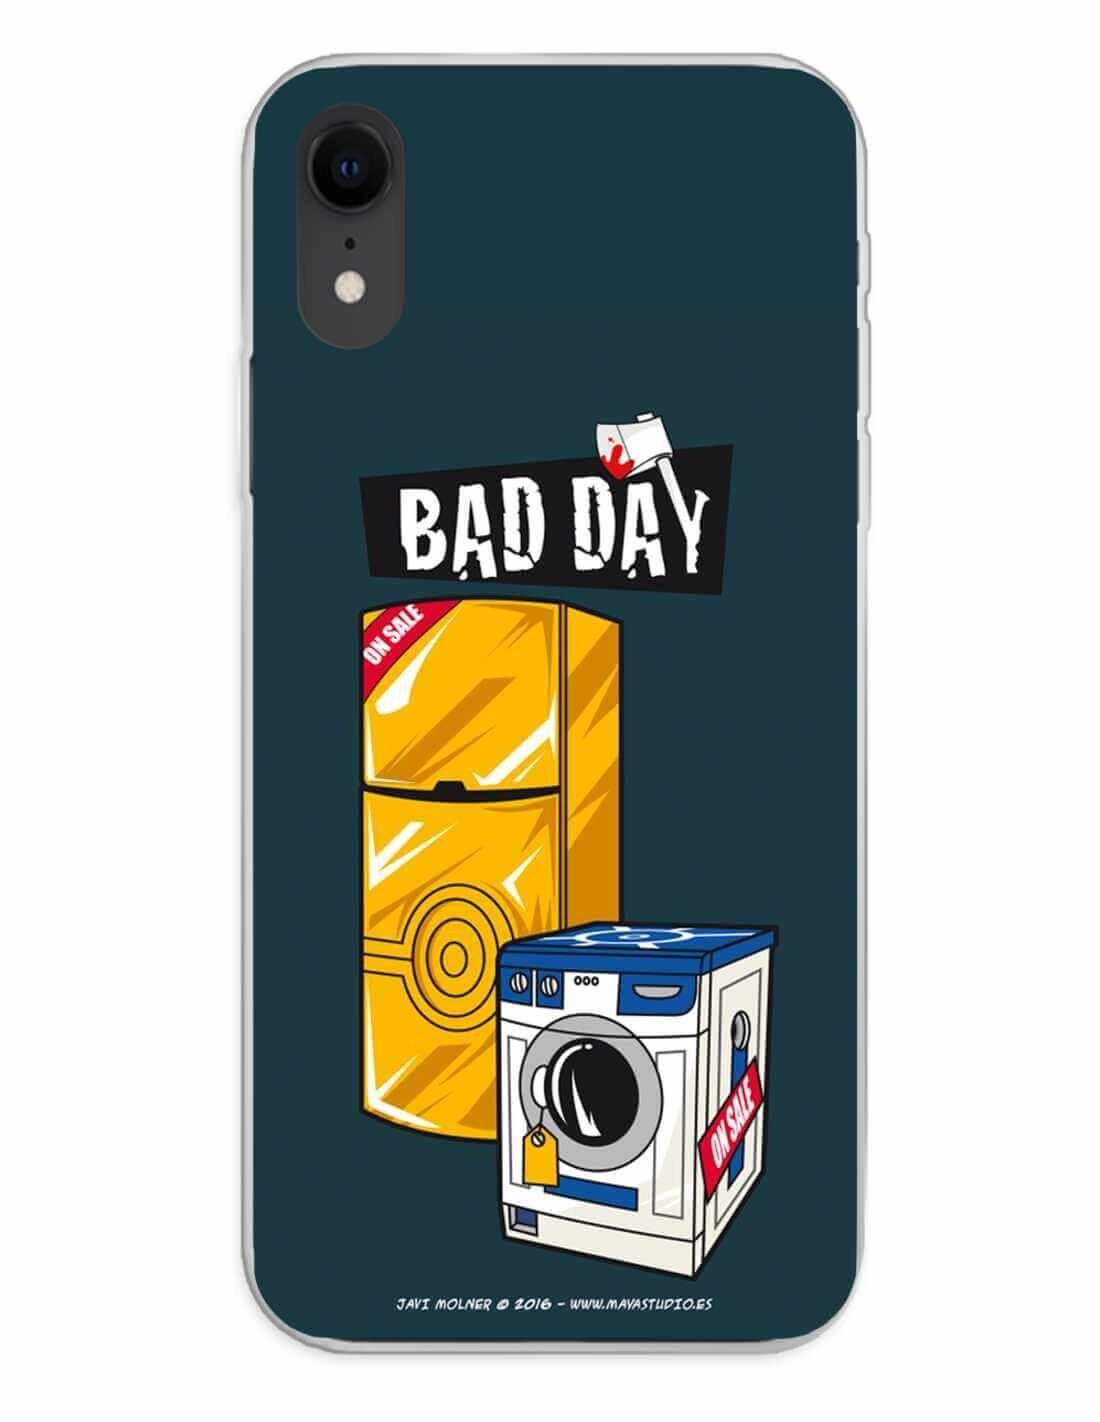 Apple iPhone XR Funda Silicona Bad Day Offer